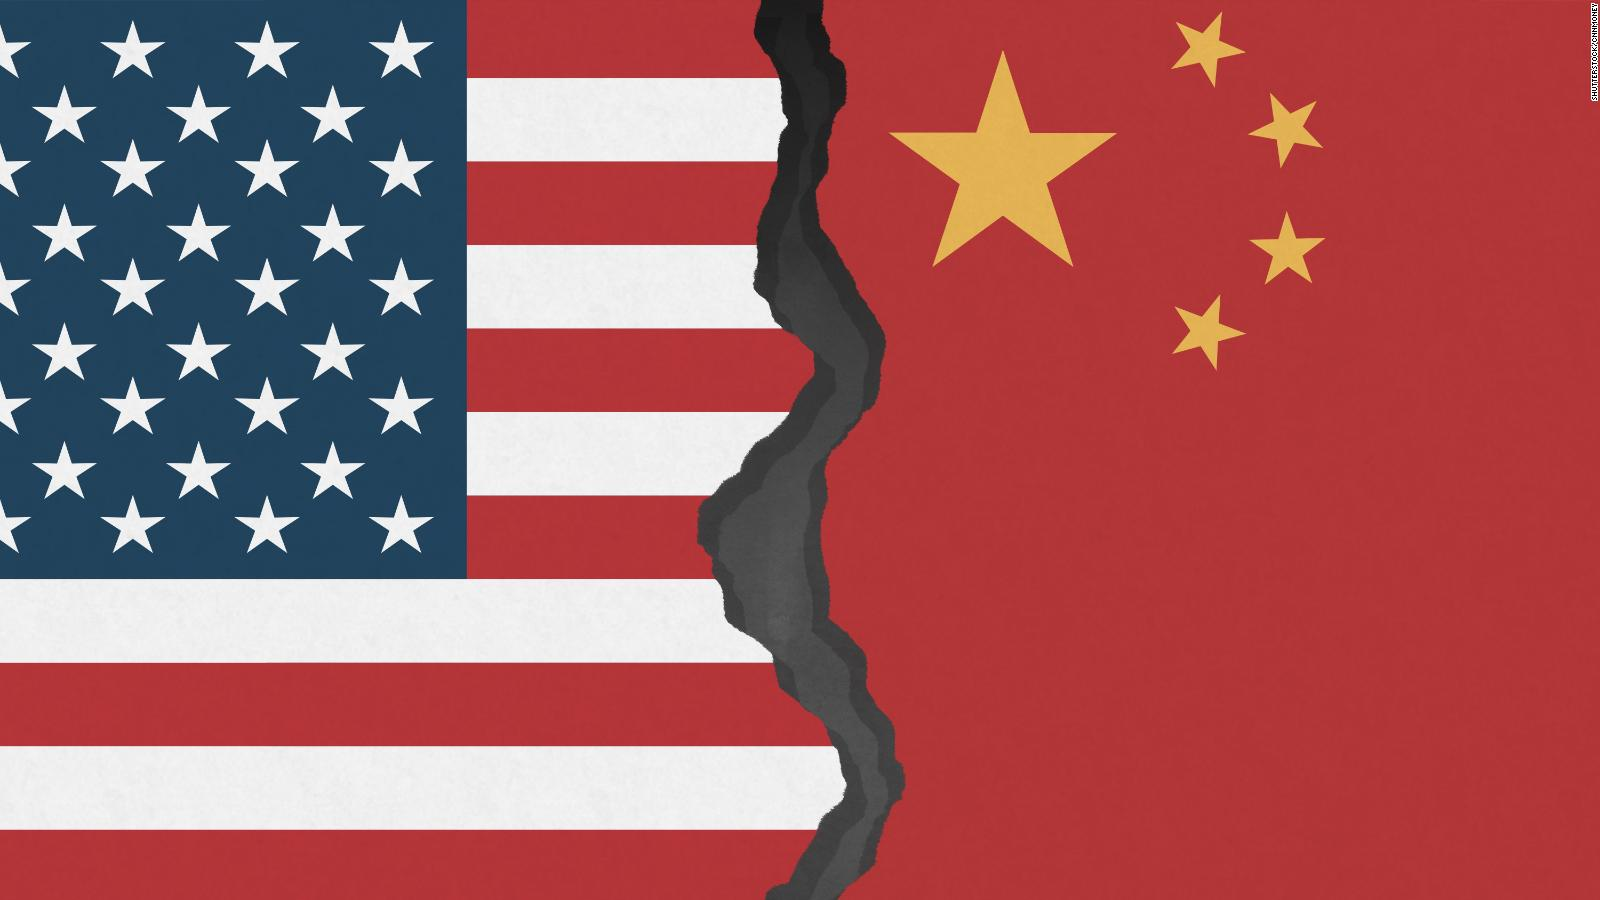 Trade War Us Tariffs Push Business Out Of China But Not Into Wiring Money From To The Is Pushing America